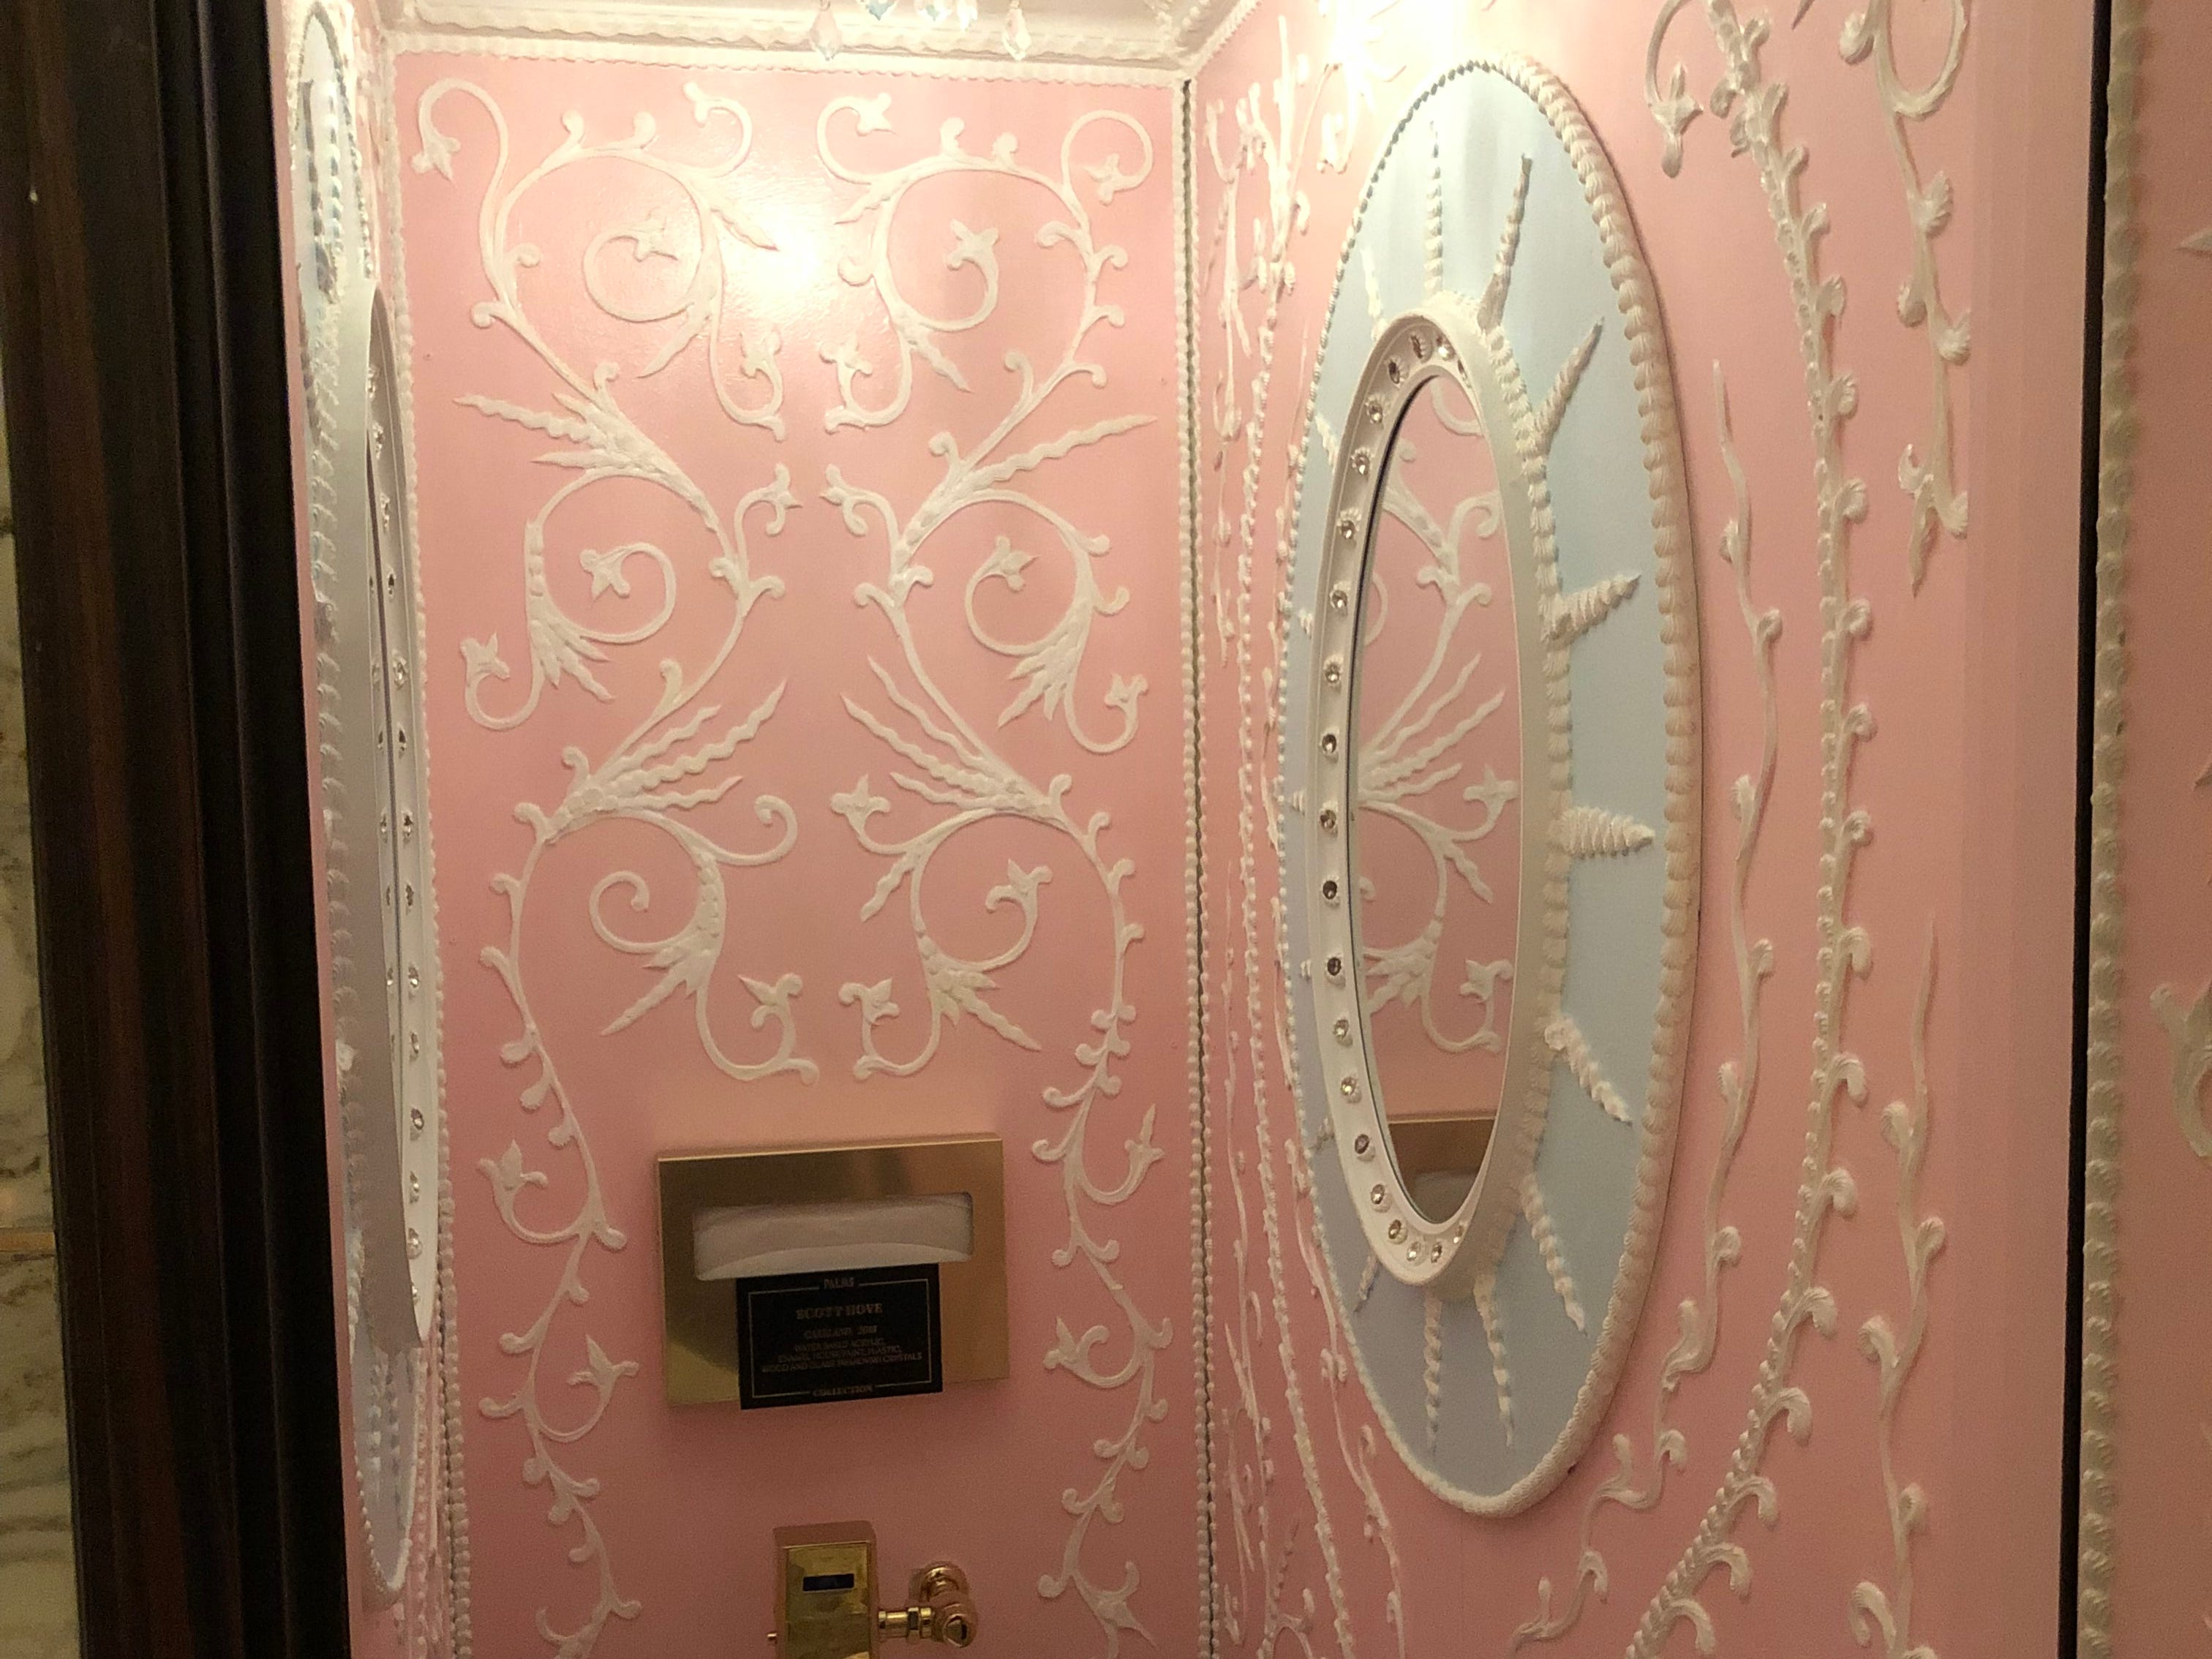 """Some surprise artwork in the women's room near Scotch 80 Prime at the Palms Casino Resort in Las Vegas. The middle stall is an art installation called """"Cakeland"""" by Scott Hove."""